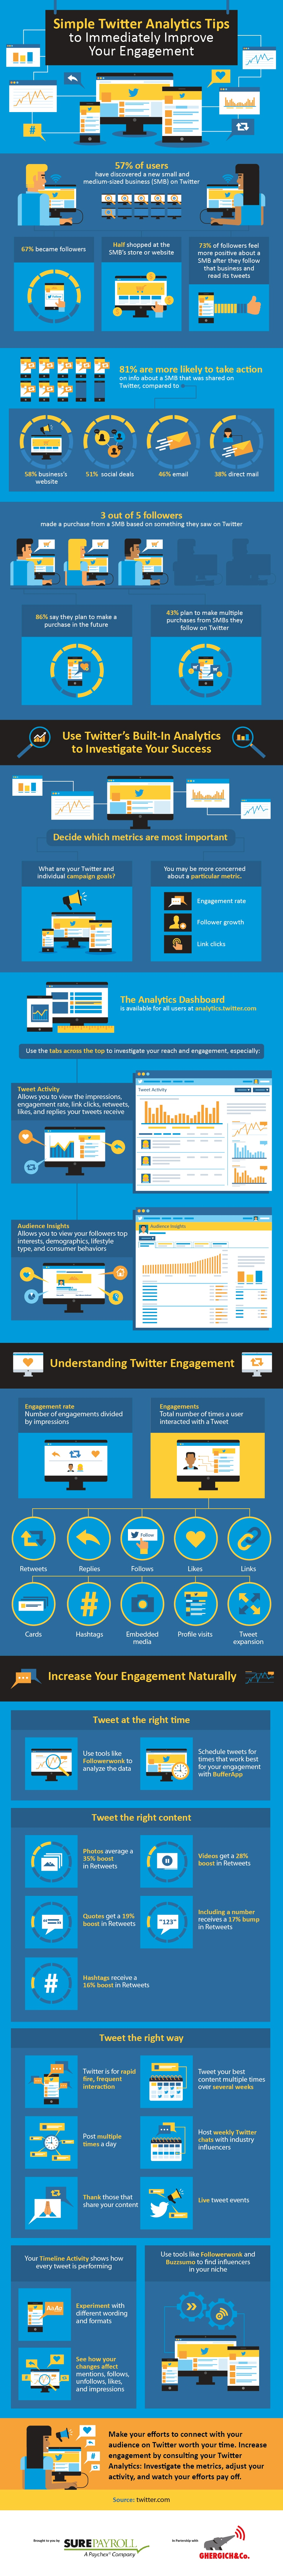 Simple Twitter Analytics Tips to Immediately Improve Your Engagement [Infographic] | Social Media Today